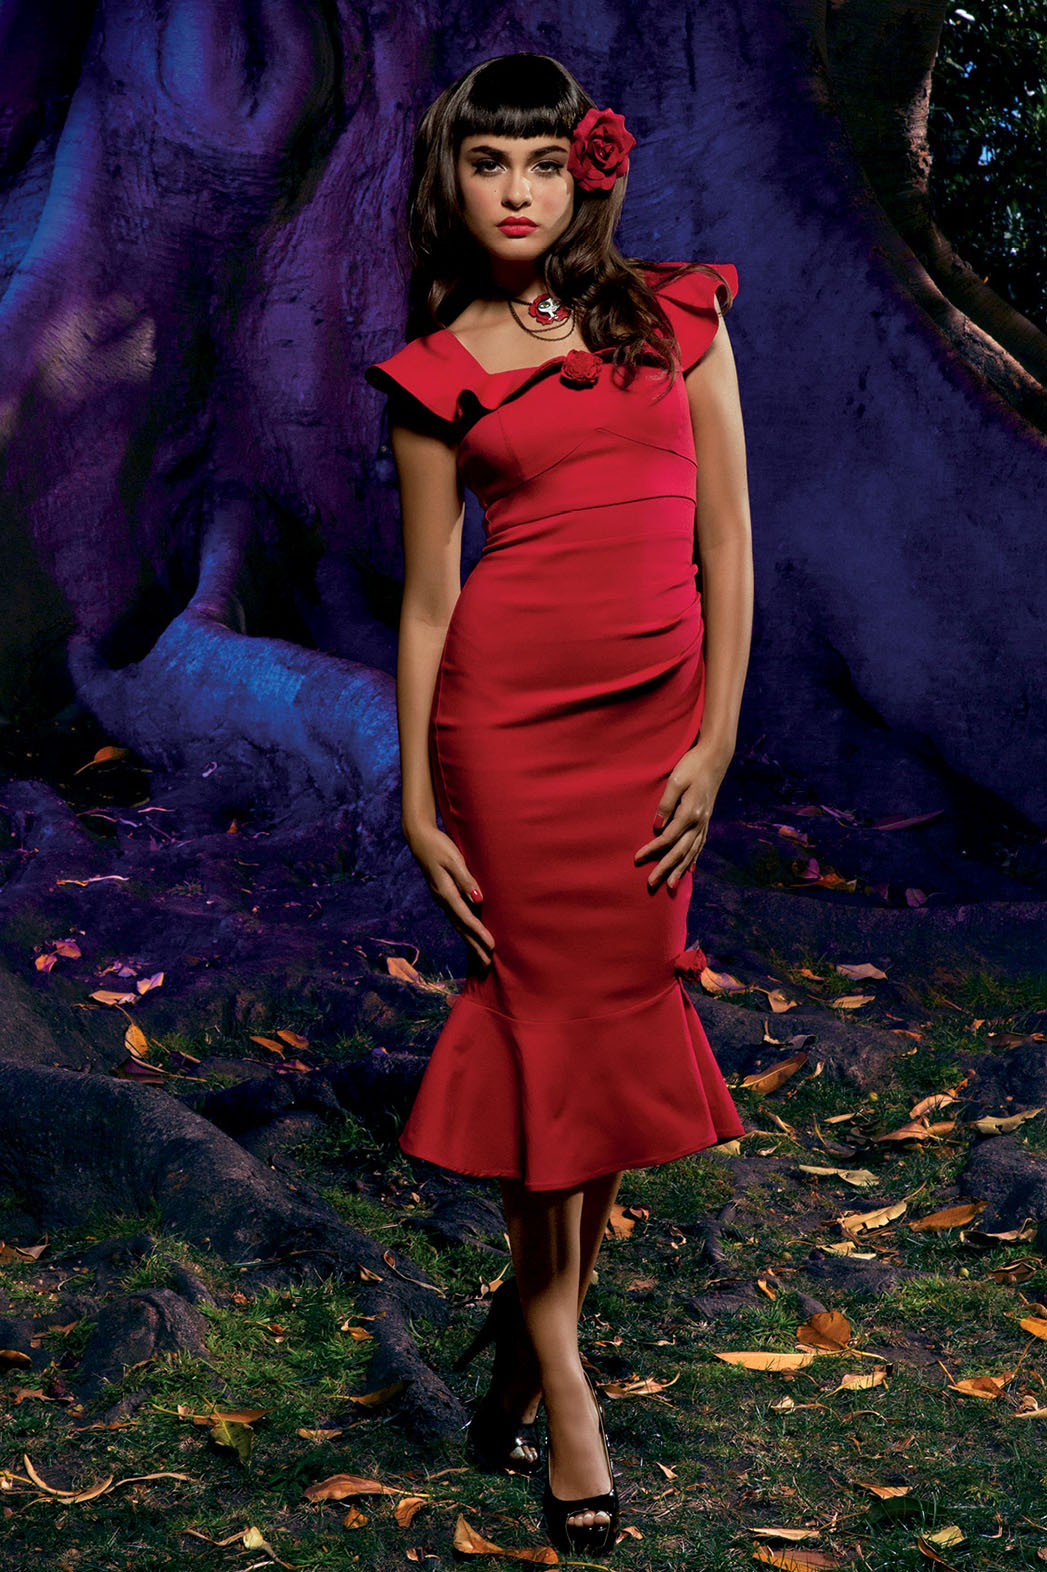 Hot Topic Red Dress - P 2014